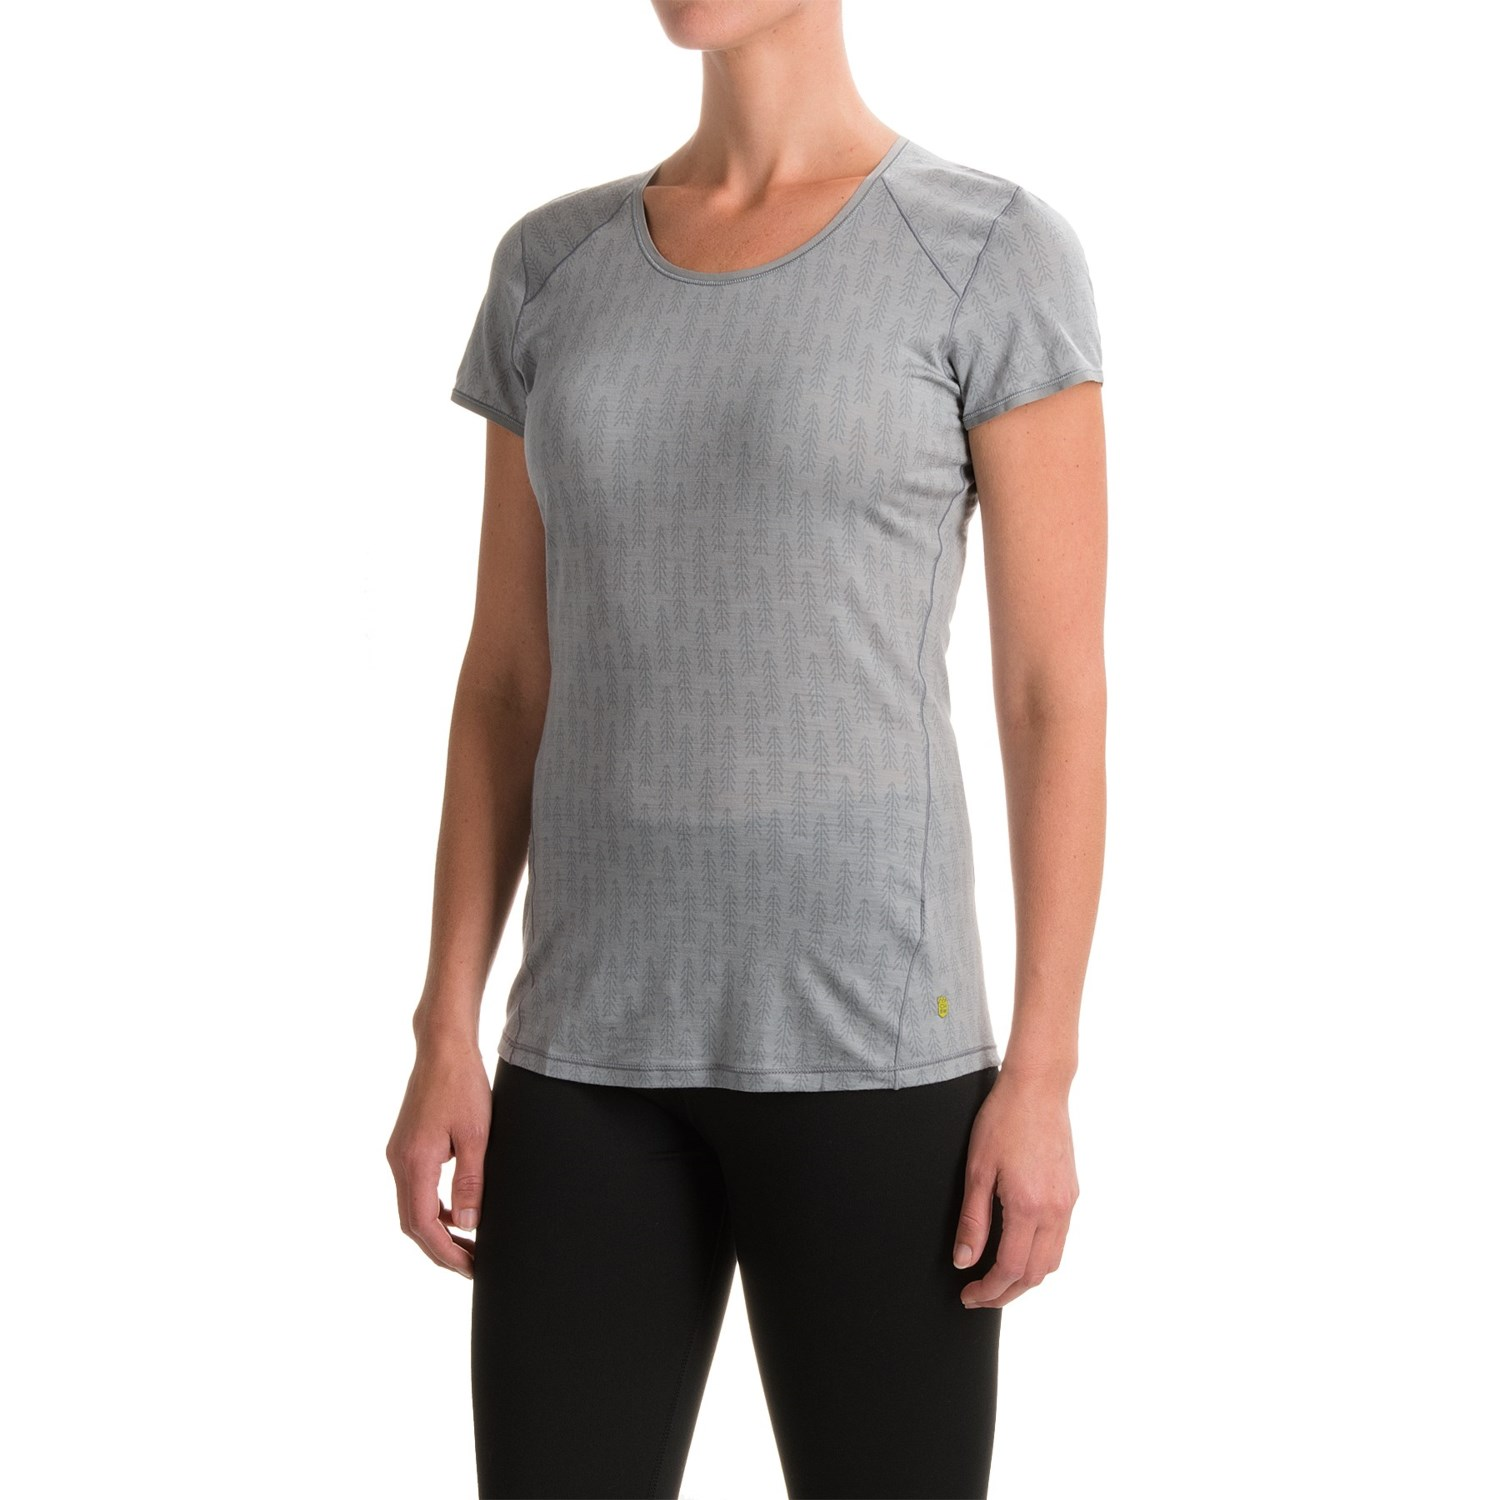 Smartwool nts 150 t shirt for women for Merino wool shirt womens